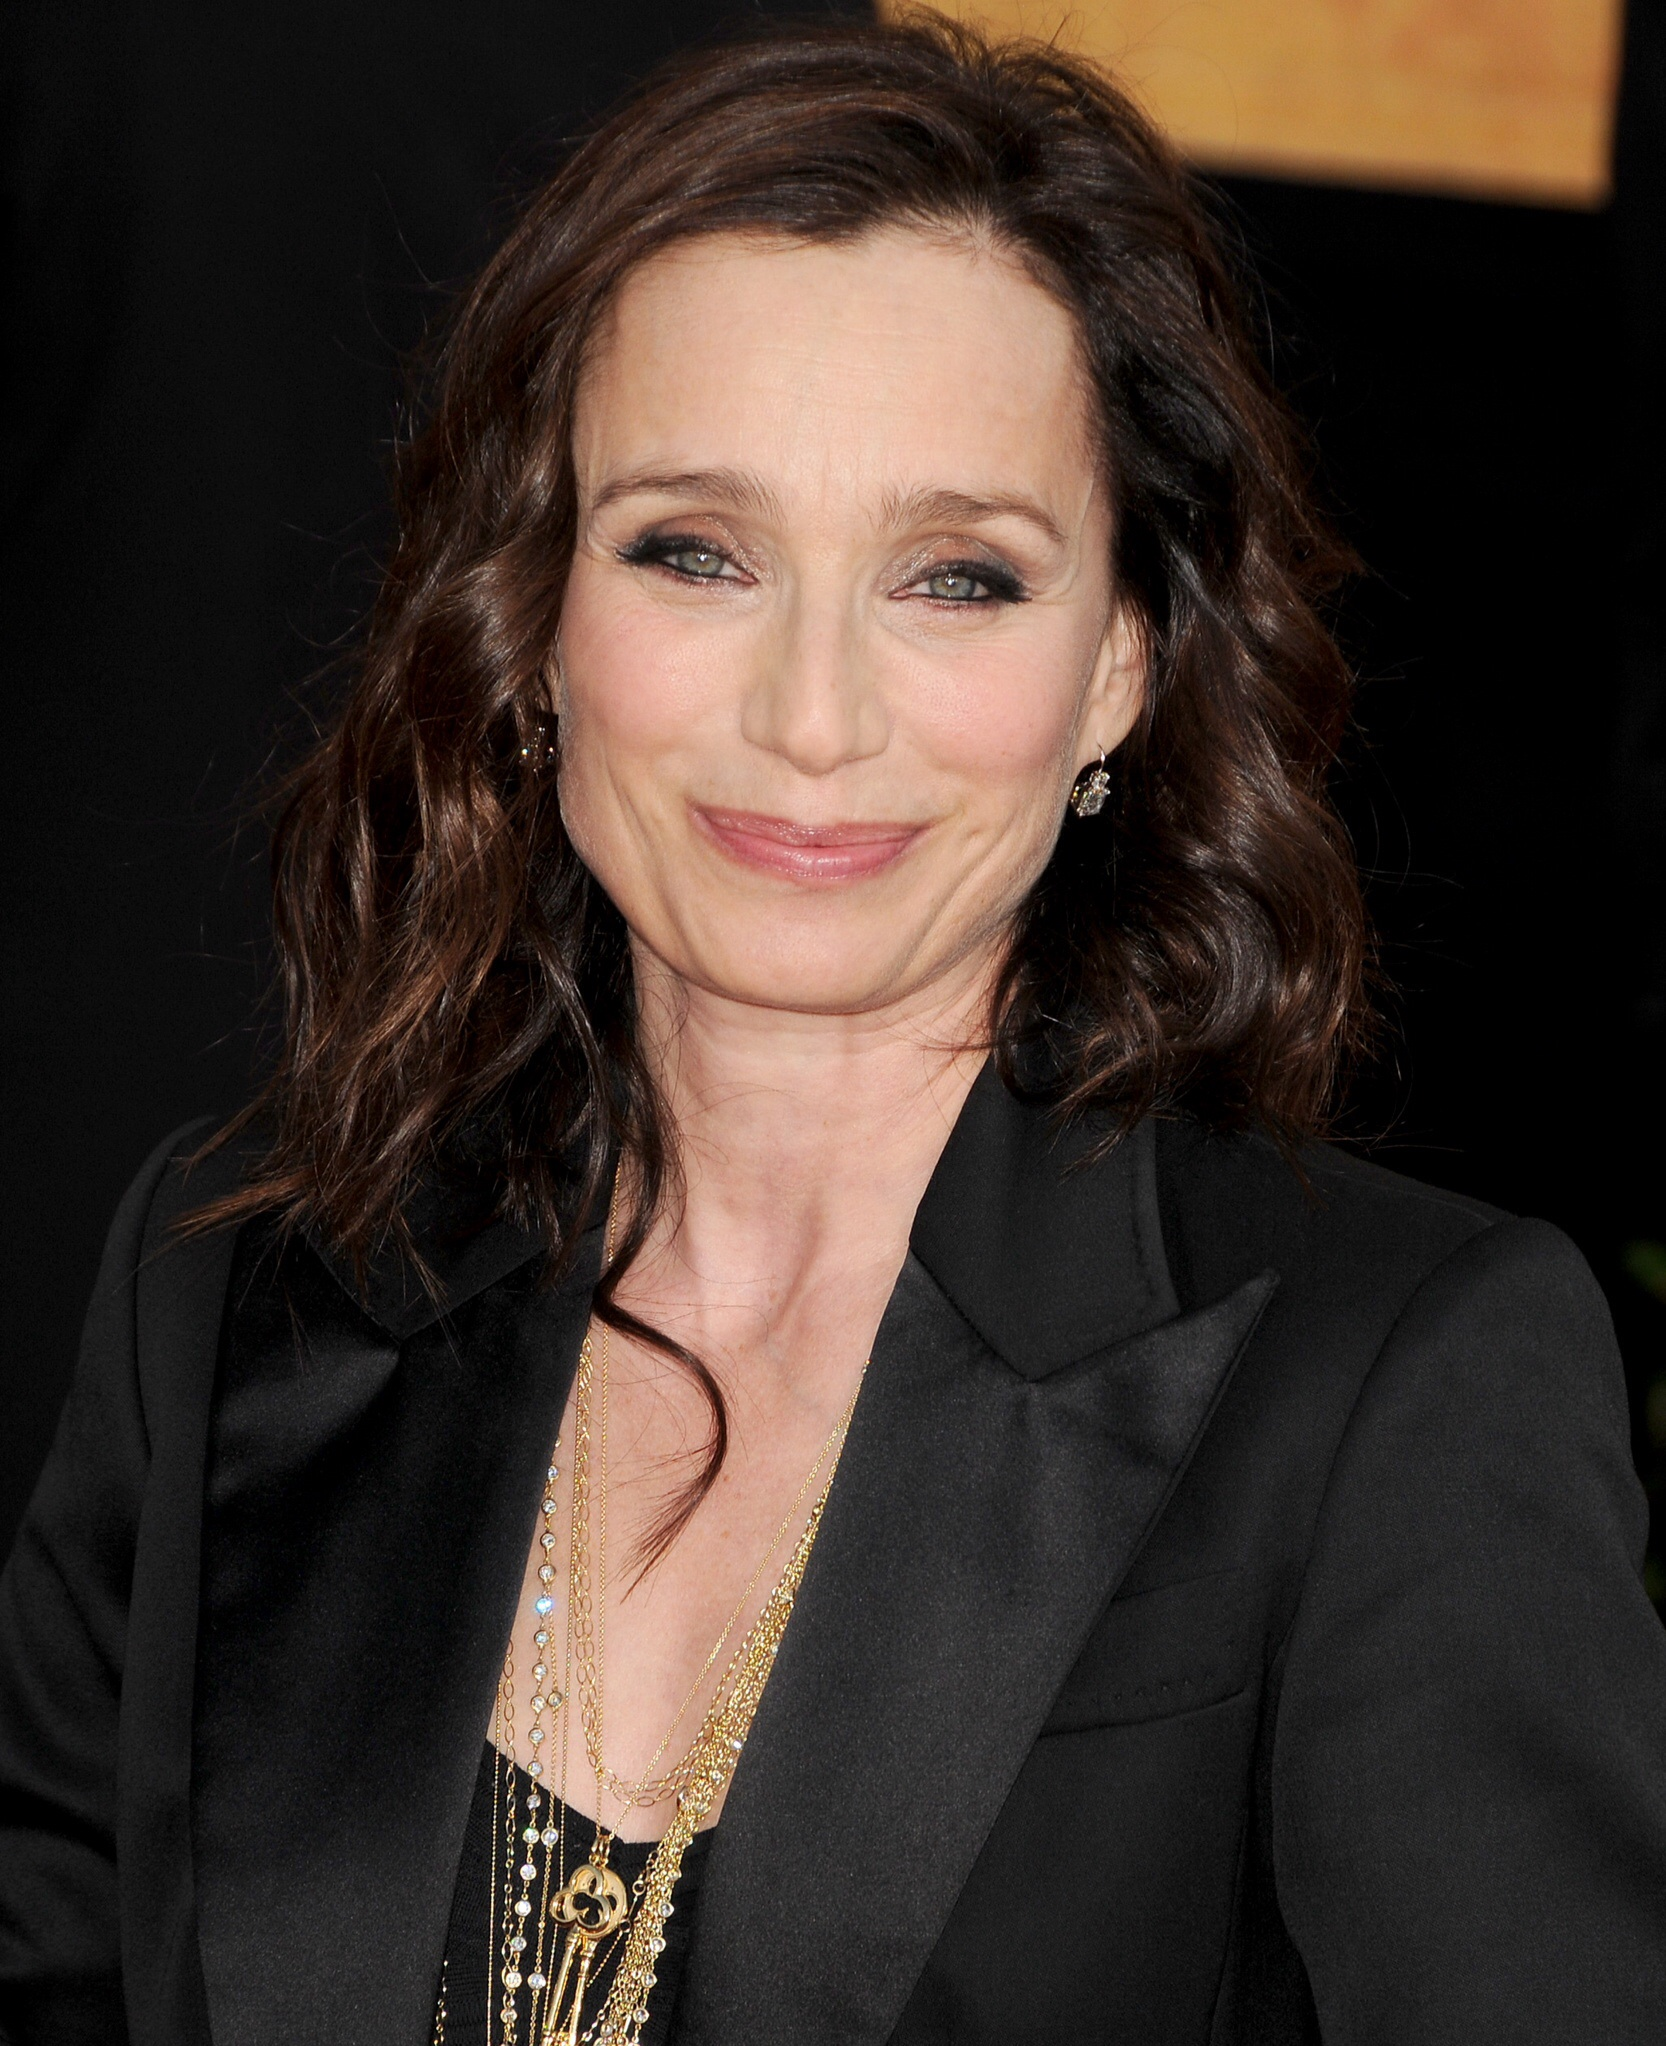 Kristin Scott Thomas (born 1960) naked (65 photos), Pussy, Leaked, Boobs, panties 2019